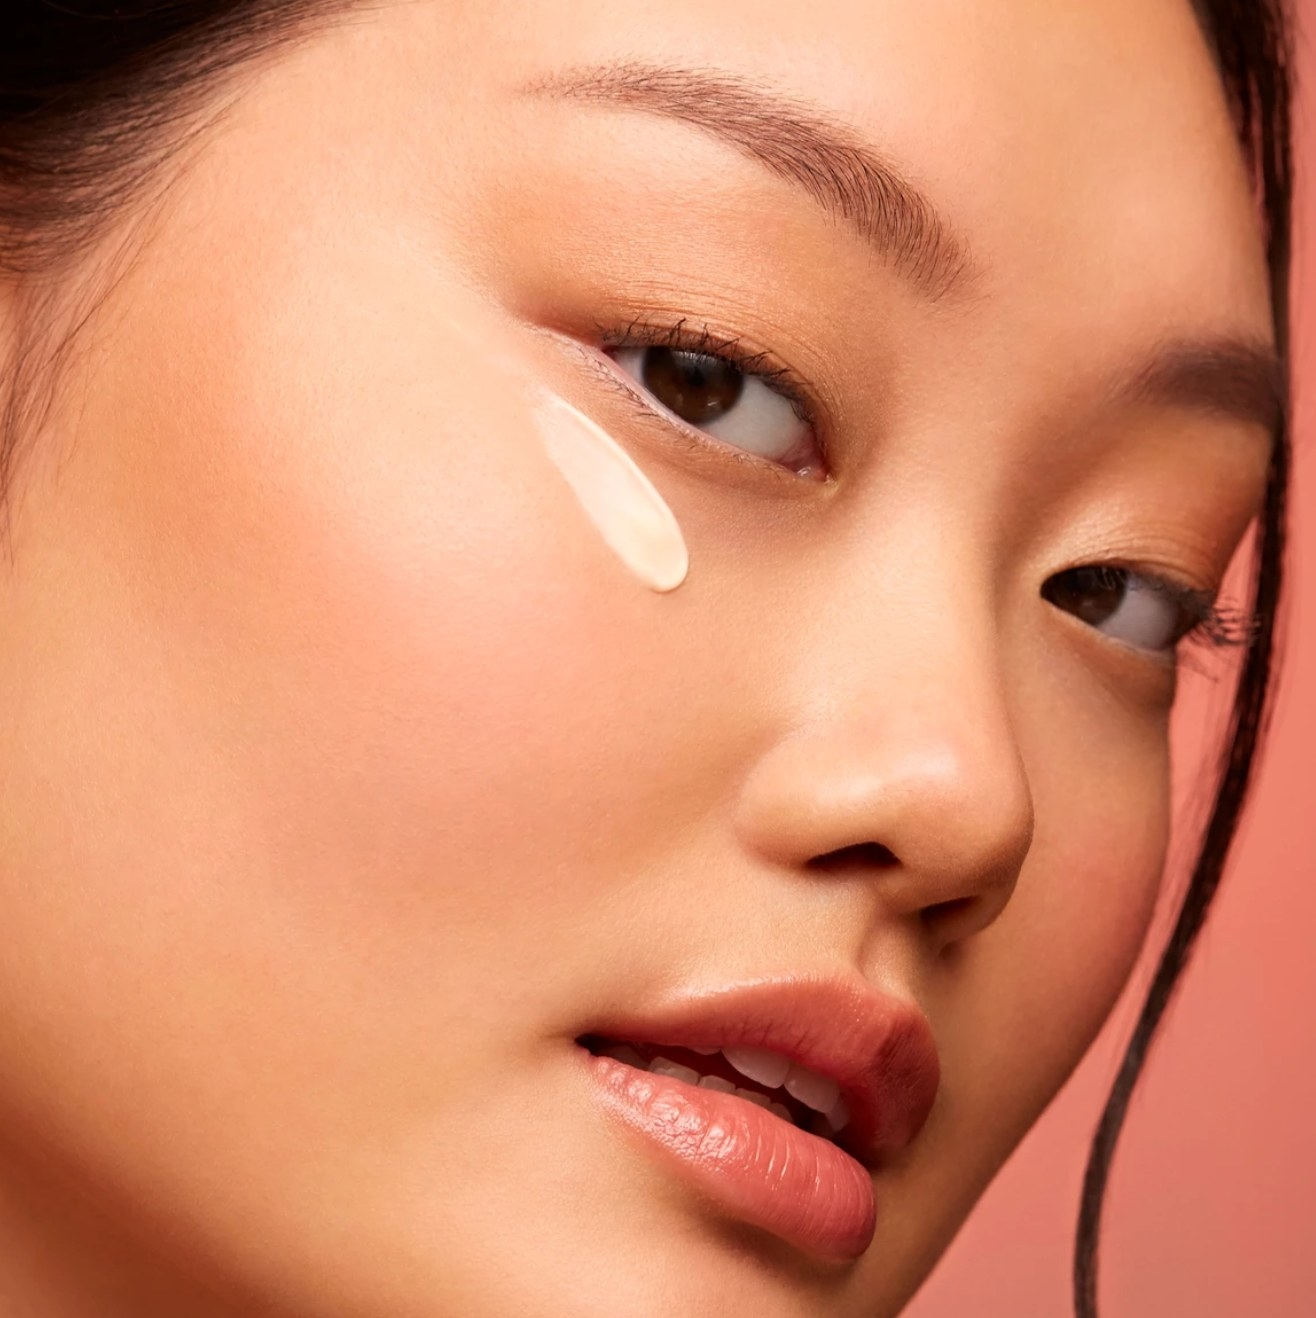 The squalane and marine algae eye cream applied on the model's face